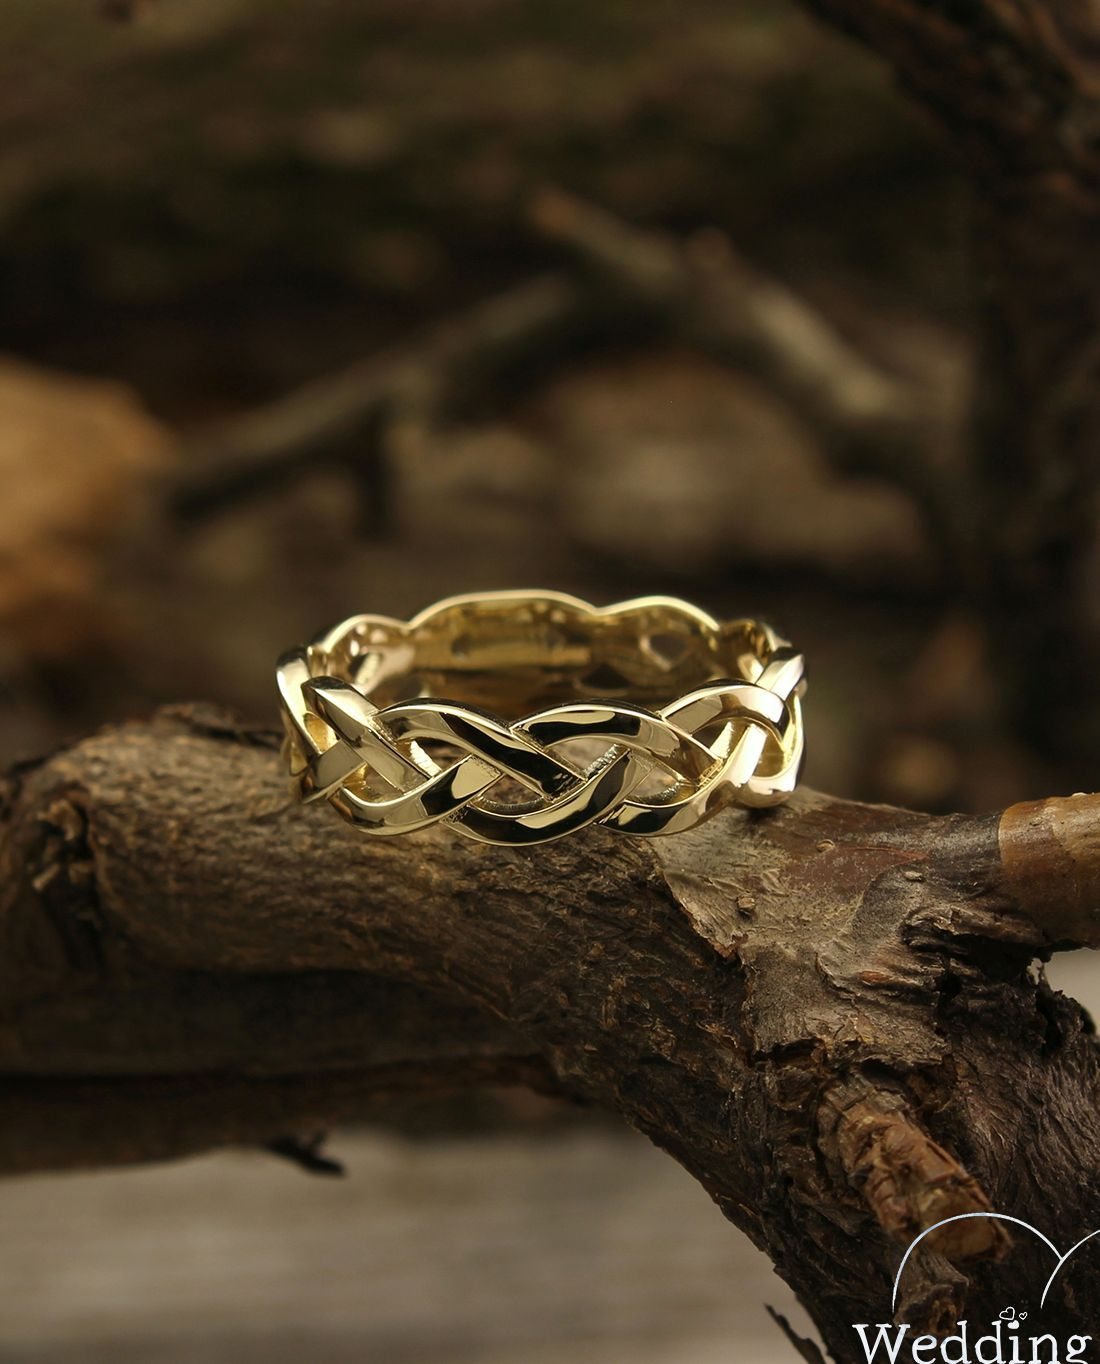 14k Yellow Gold Braided Wedding Band Twisted Gold Ring 14k Etsy Braided Wedding Band Twisted Gold Ring Gold Wedding Rings